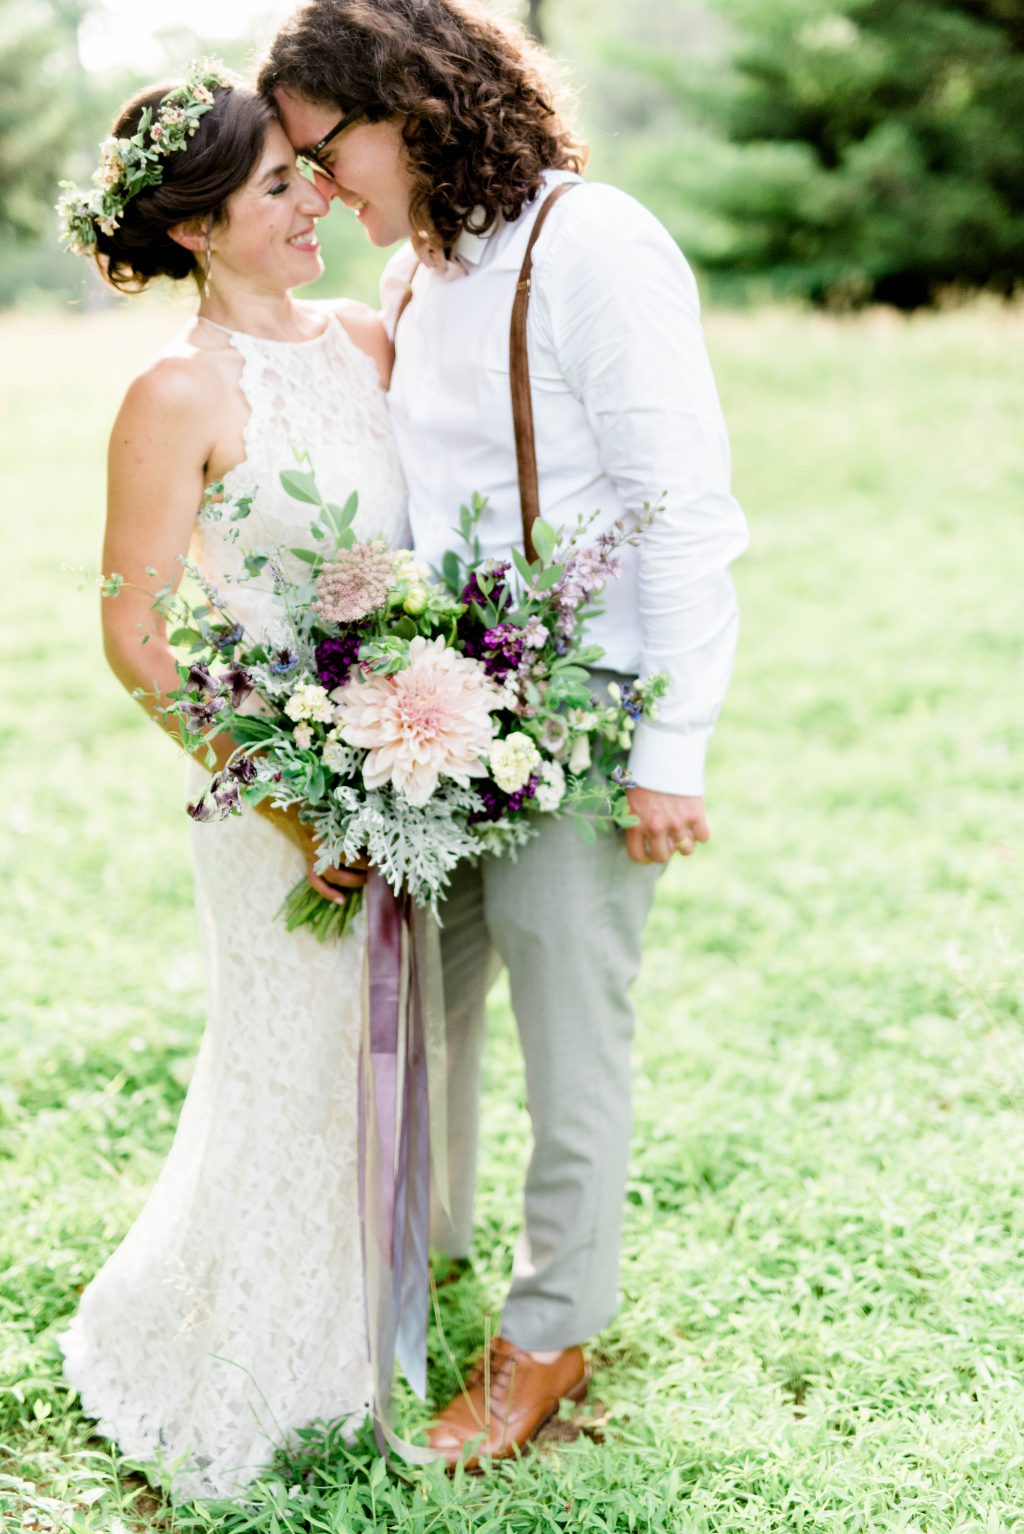 awbury-arboretum-wedding-DIY-boho-summer-haley-richter-photography-179